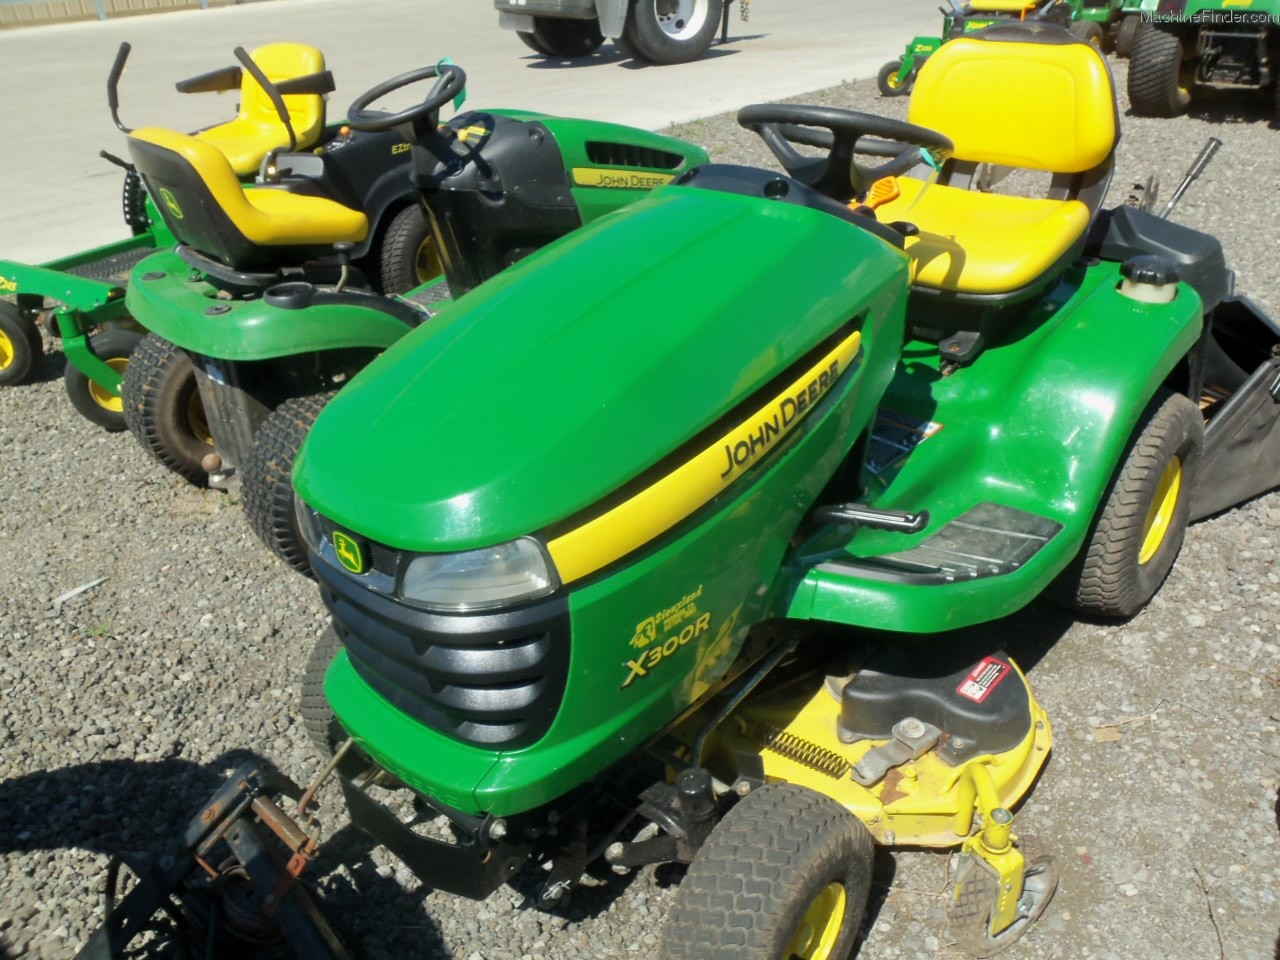 2006 john deere x300r lawn garden and commercial mowing. Black Bedroom Furniture Sets. Home Design Ideas